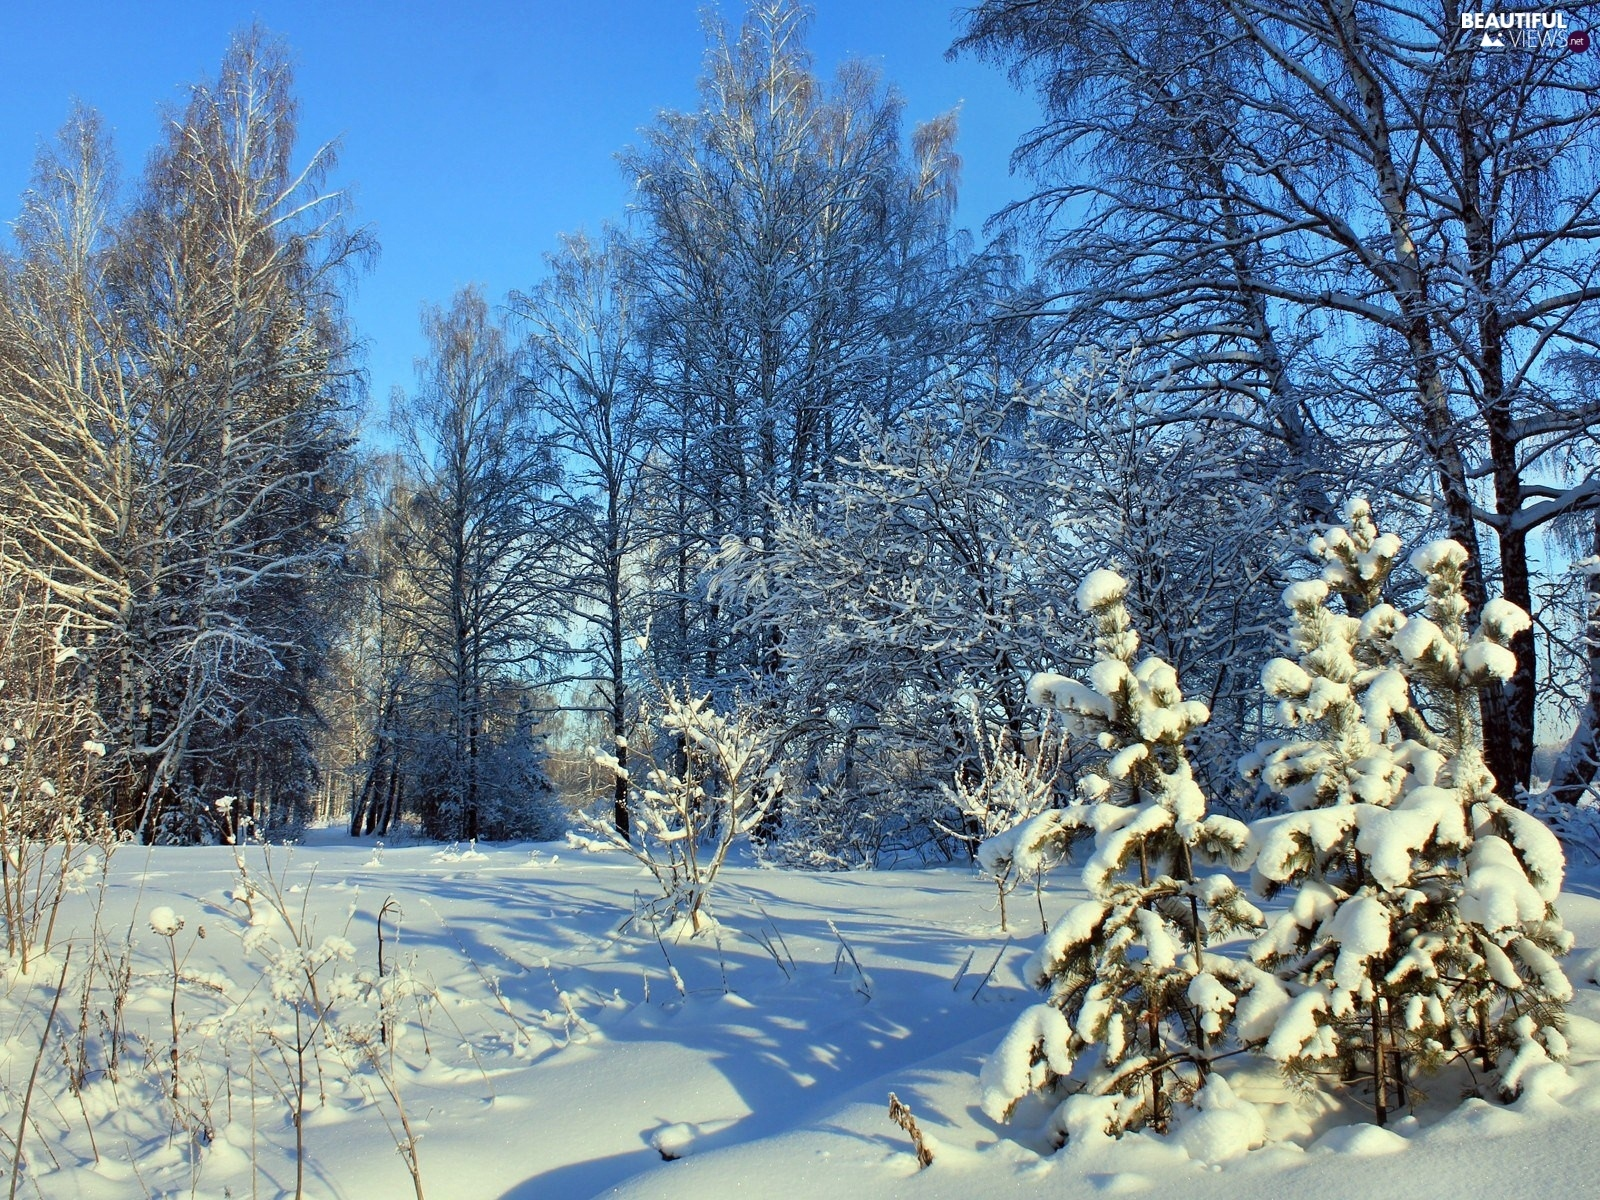 trees, viewes, Christmas, frosty, winter